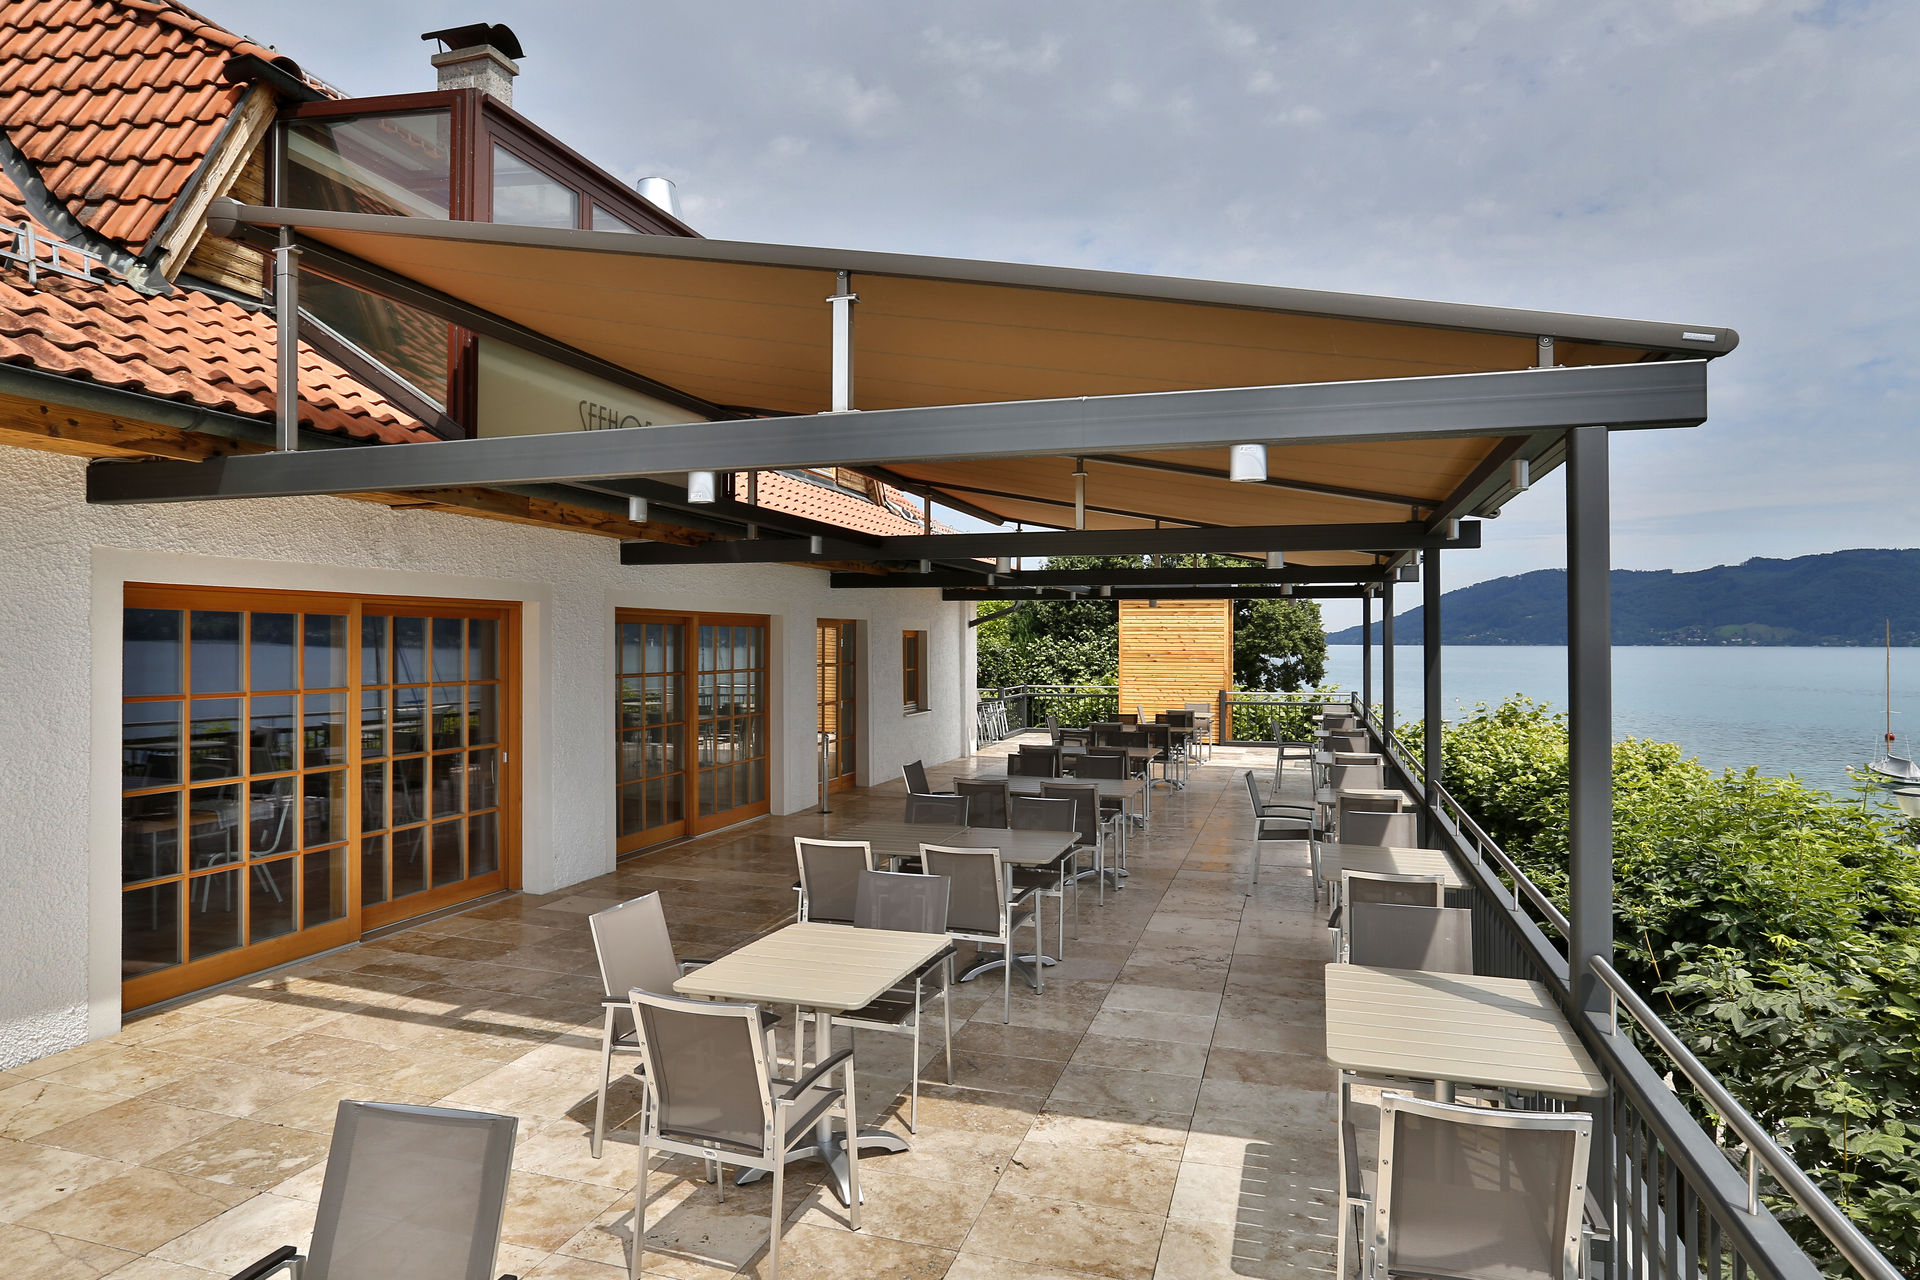 Restaurant terrace awning